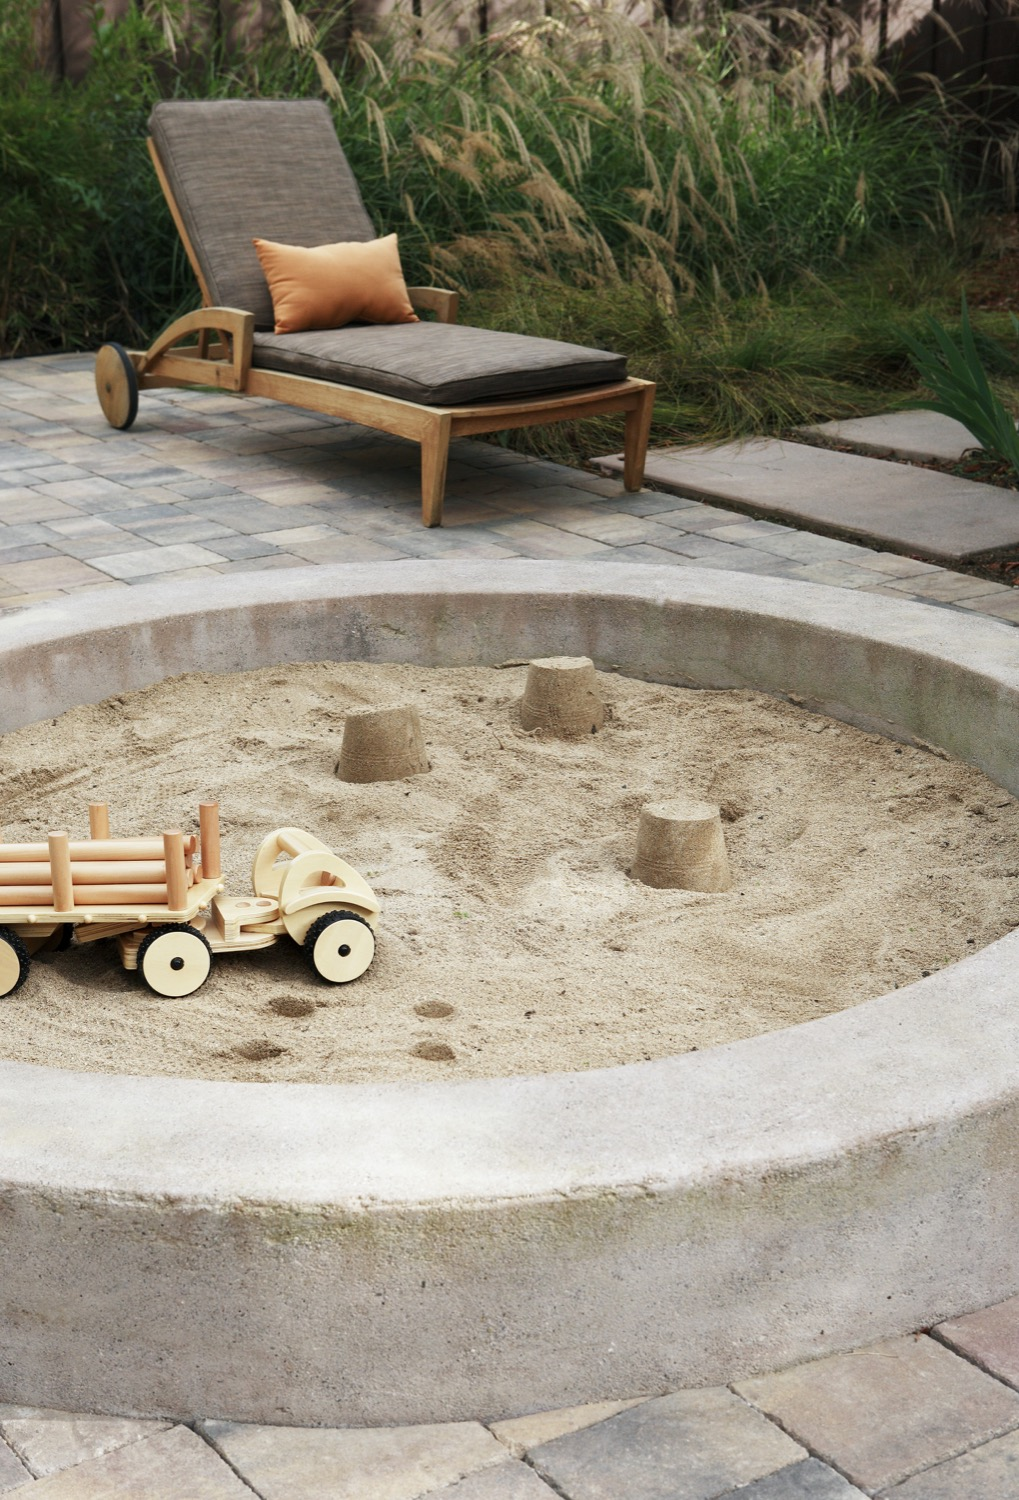 A circular concrete sandbox is fun for kids and aesthetically appealing for the adults.